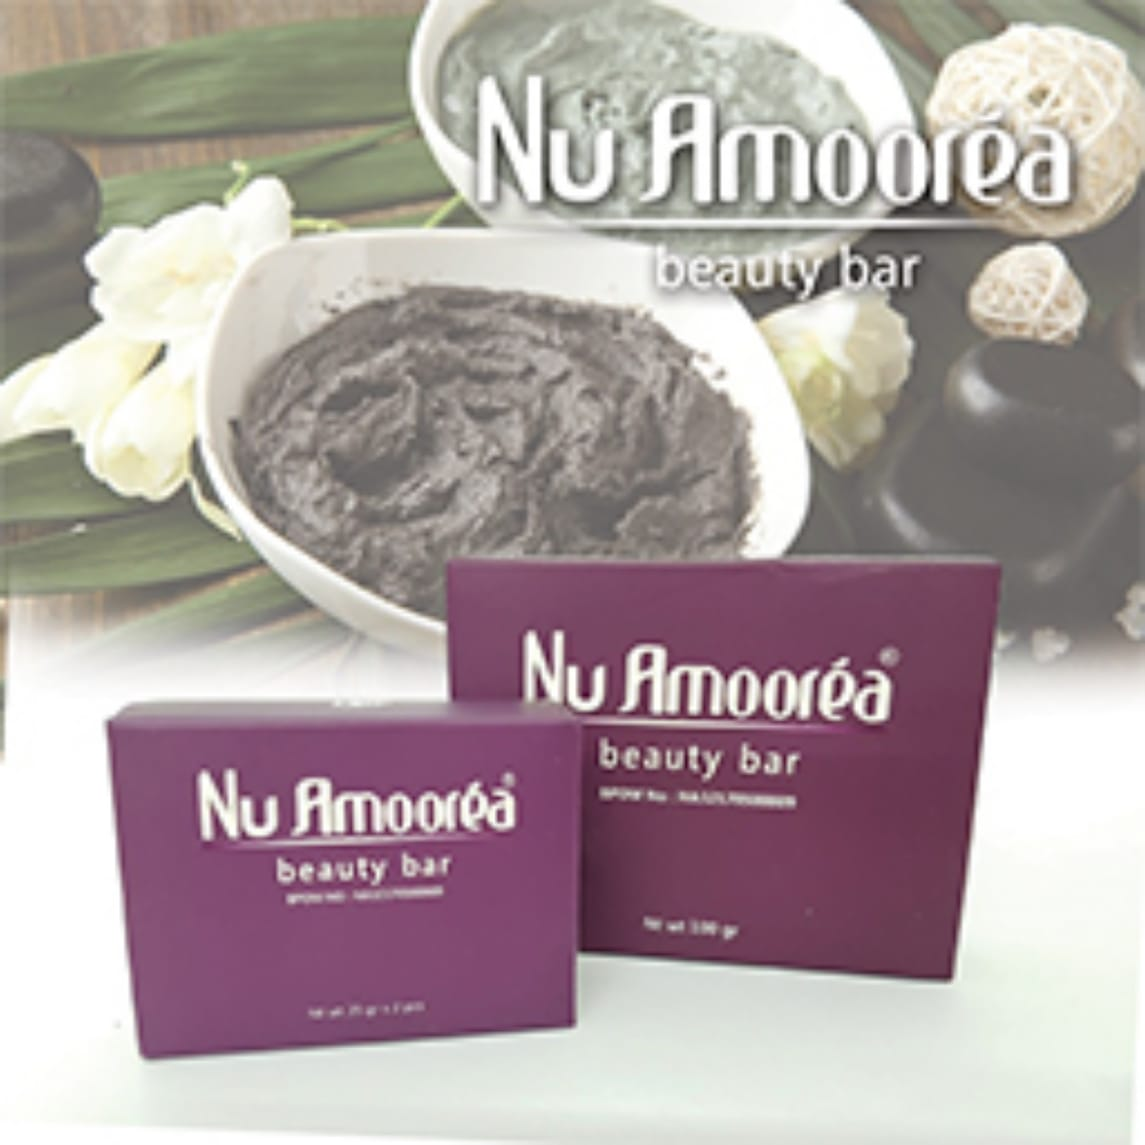 NUAMOOREA BEAUTY BAR